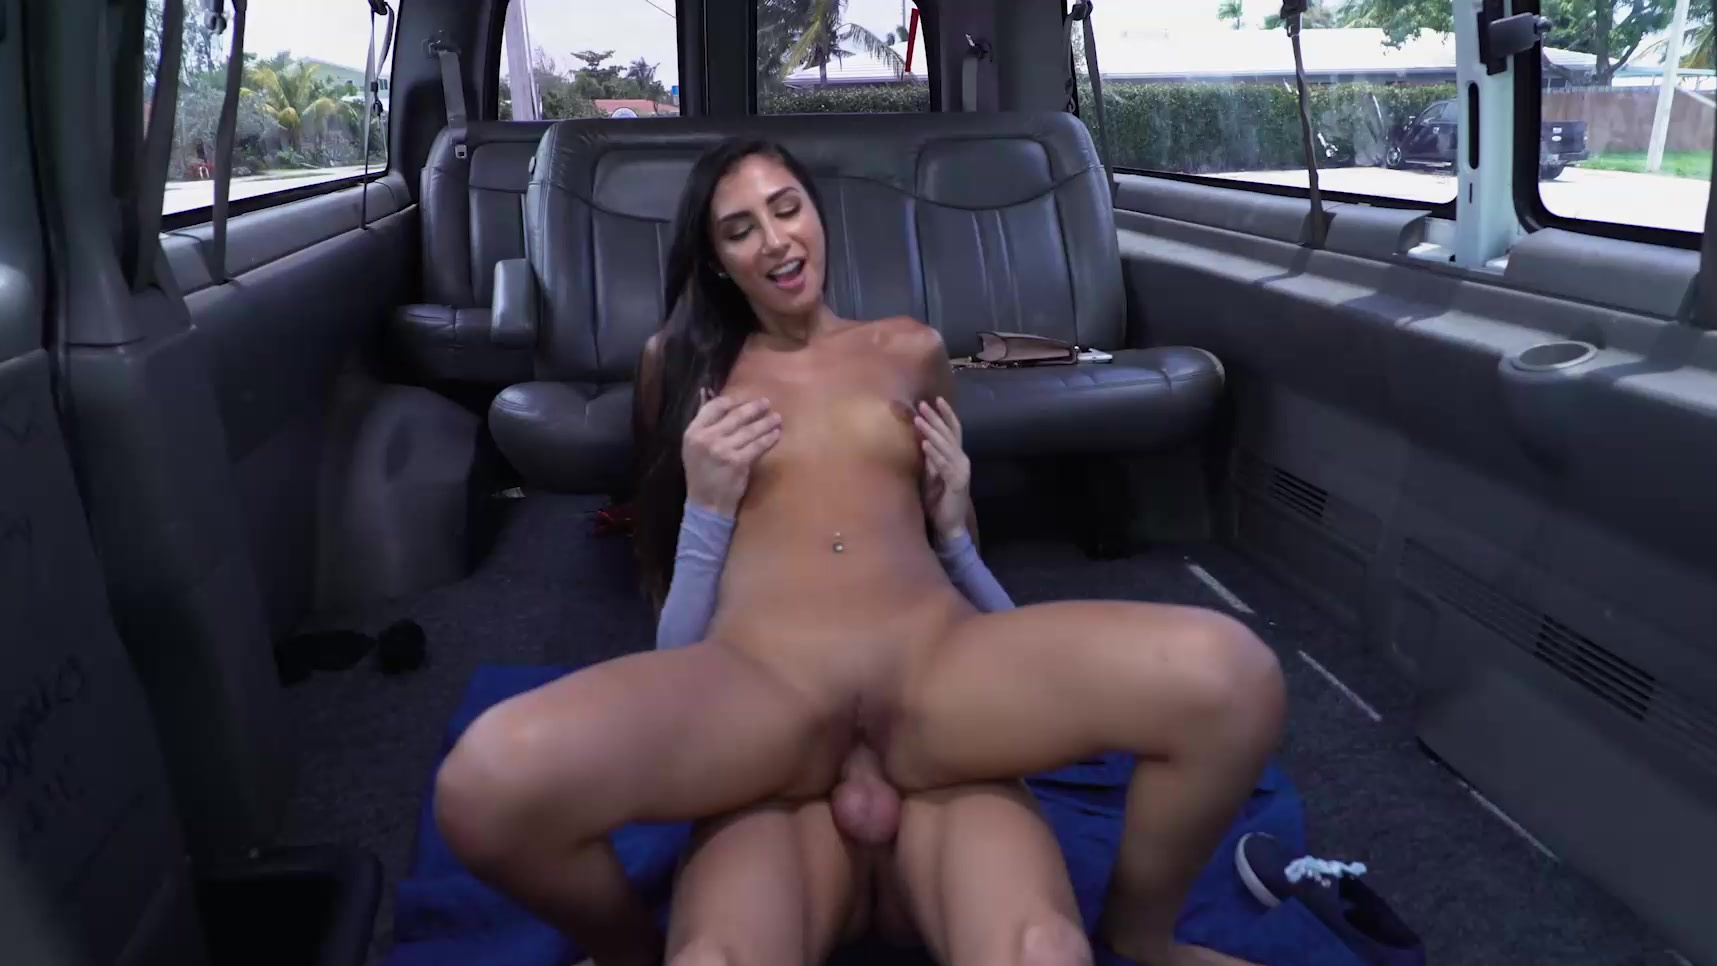 gianna bang bus